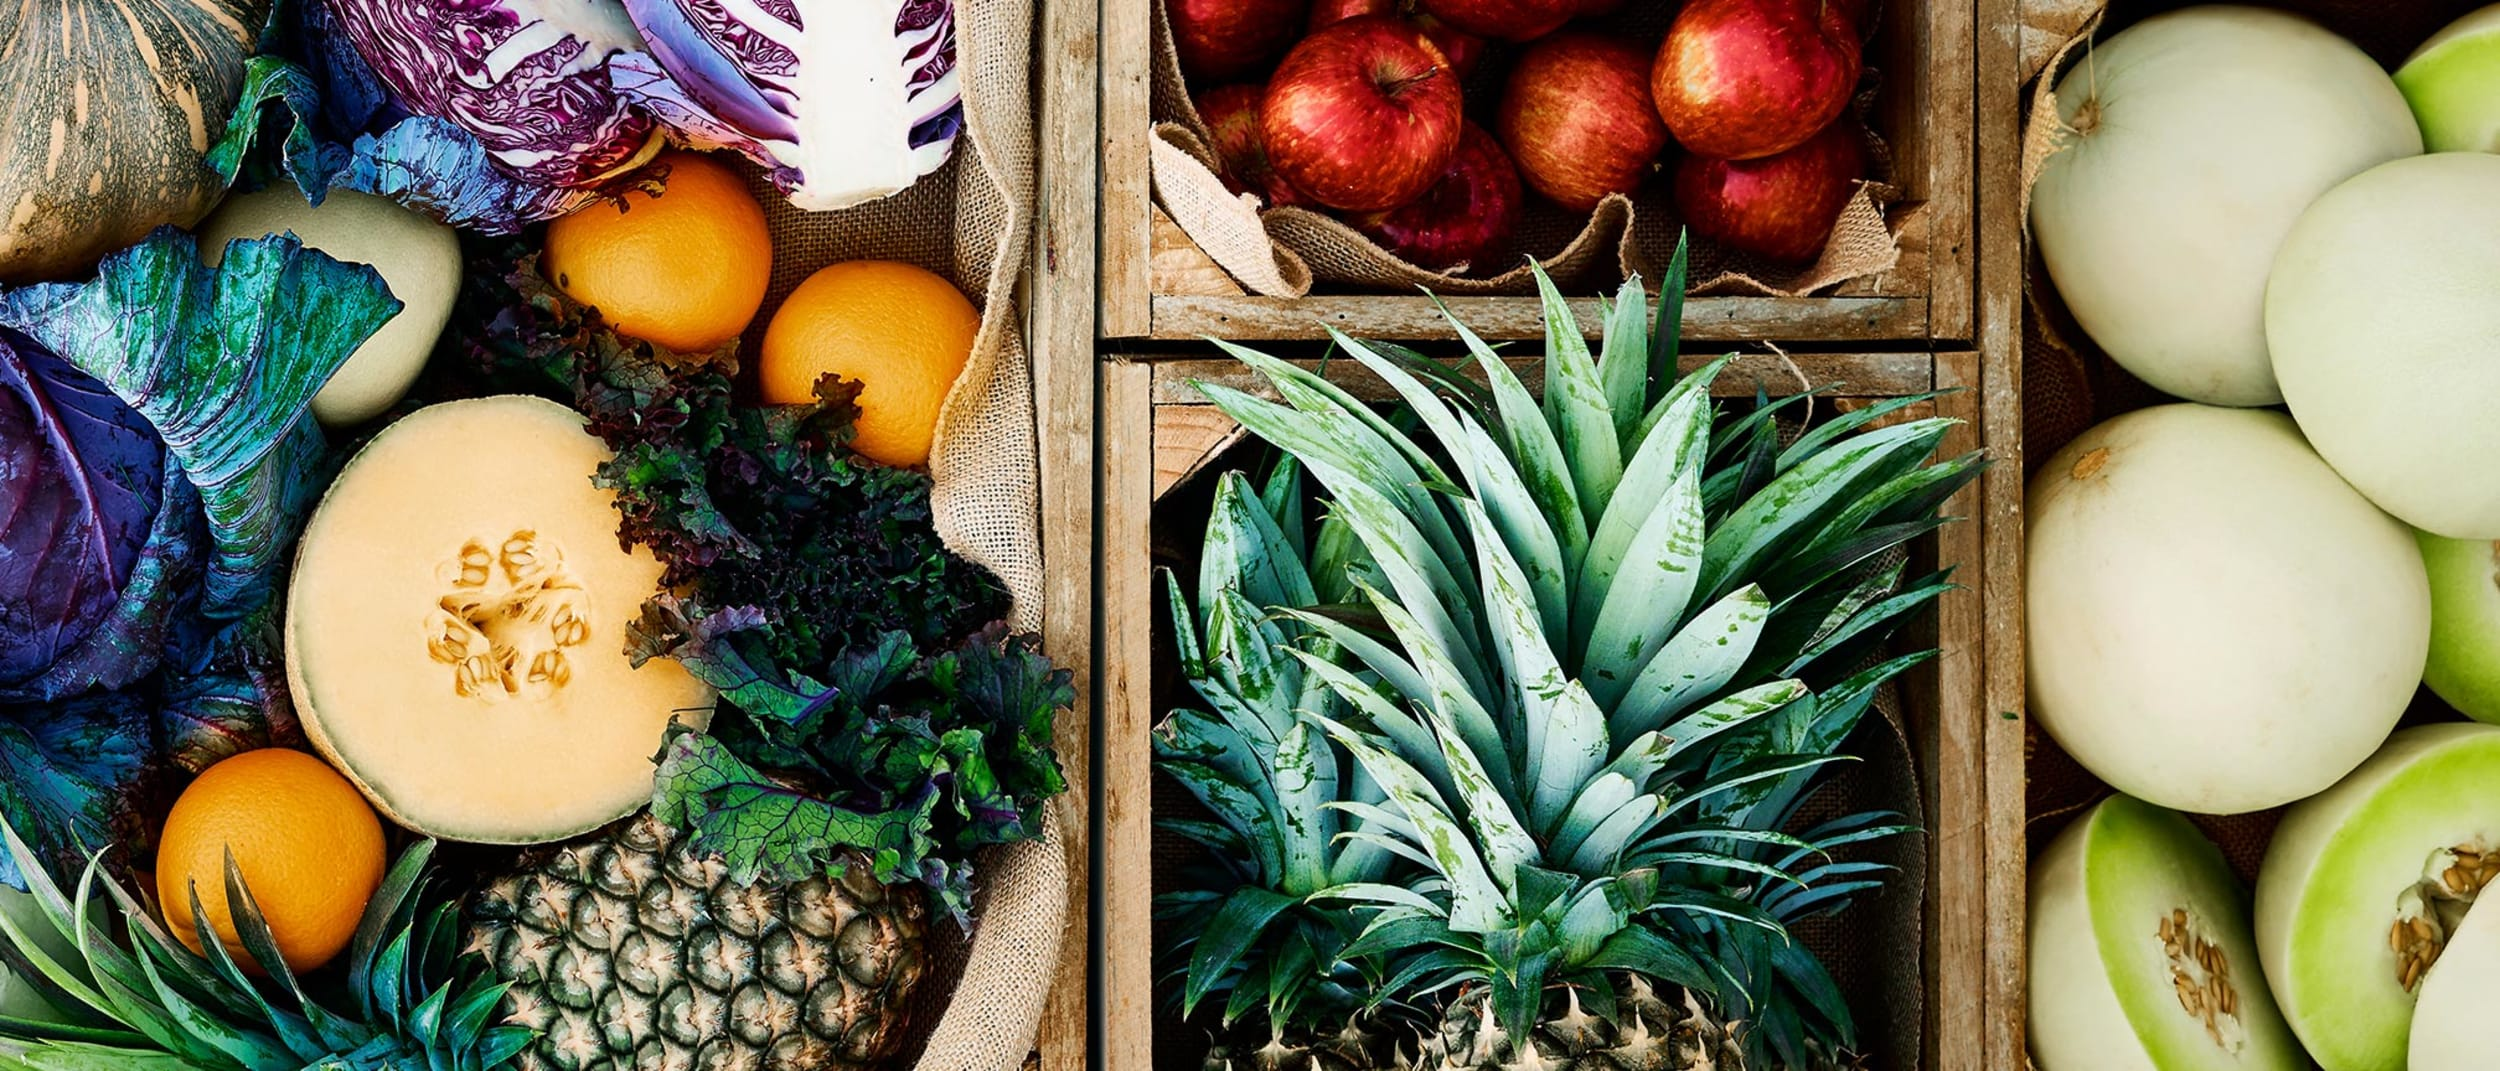 Chermside is your one-stop fresh produce destination!